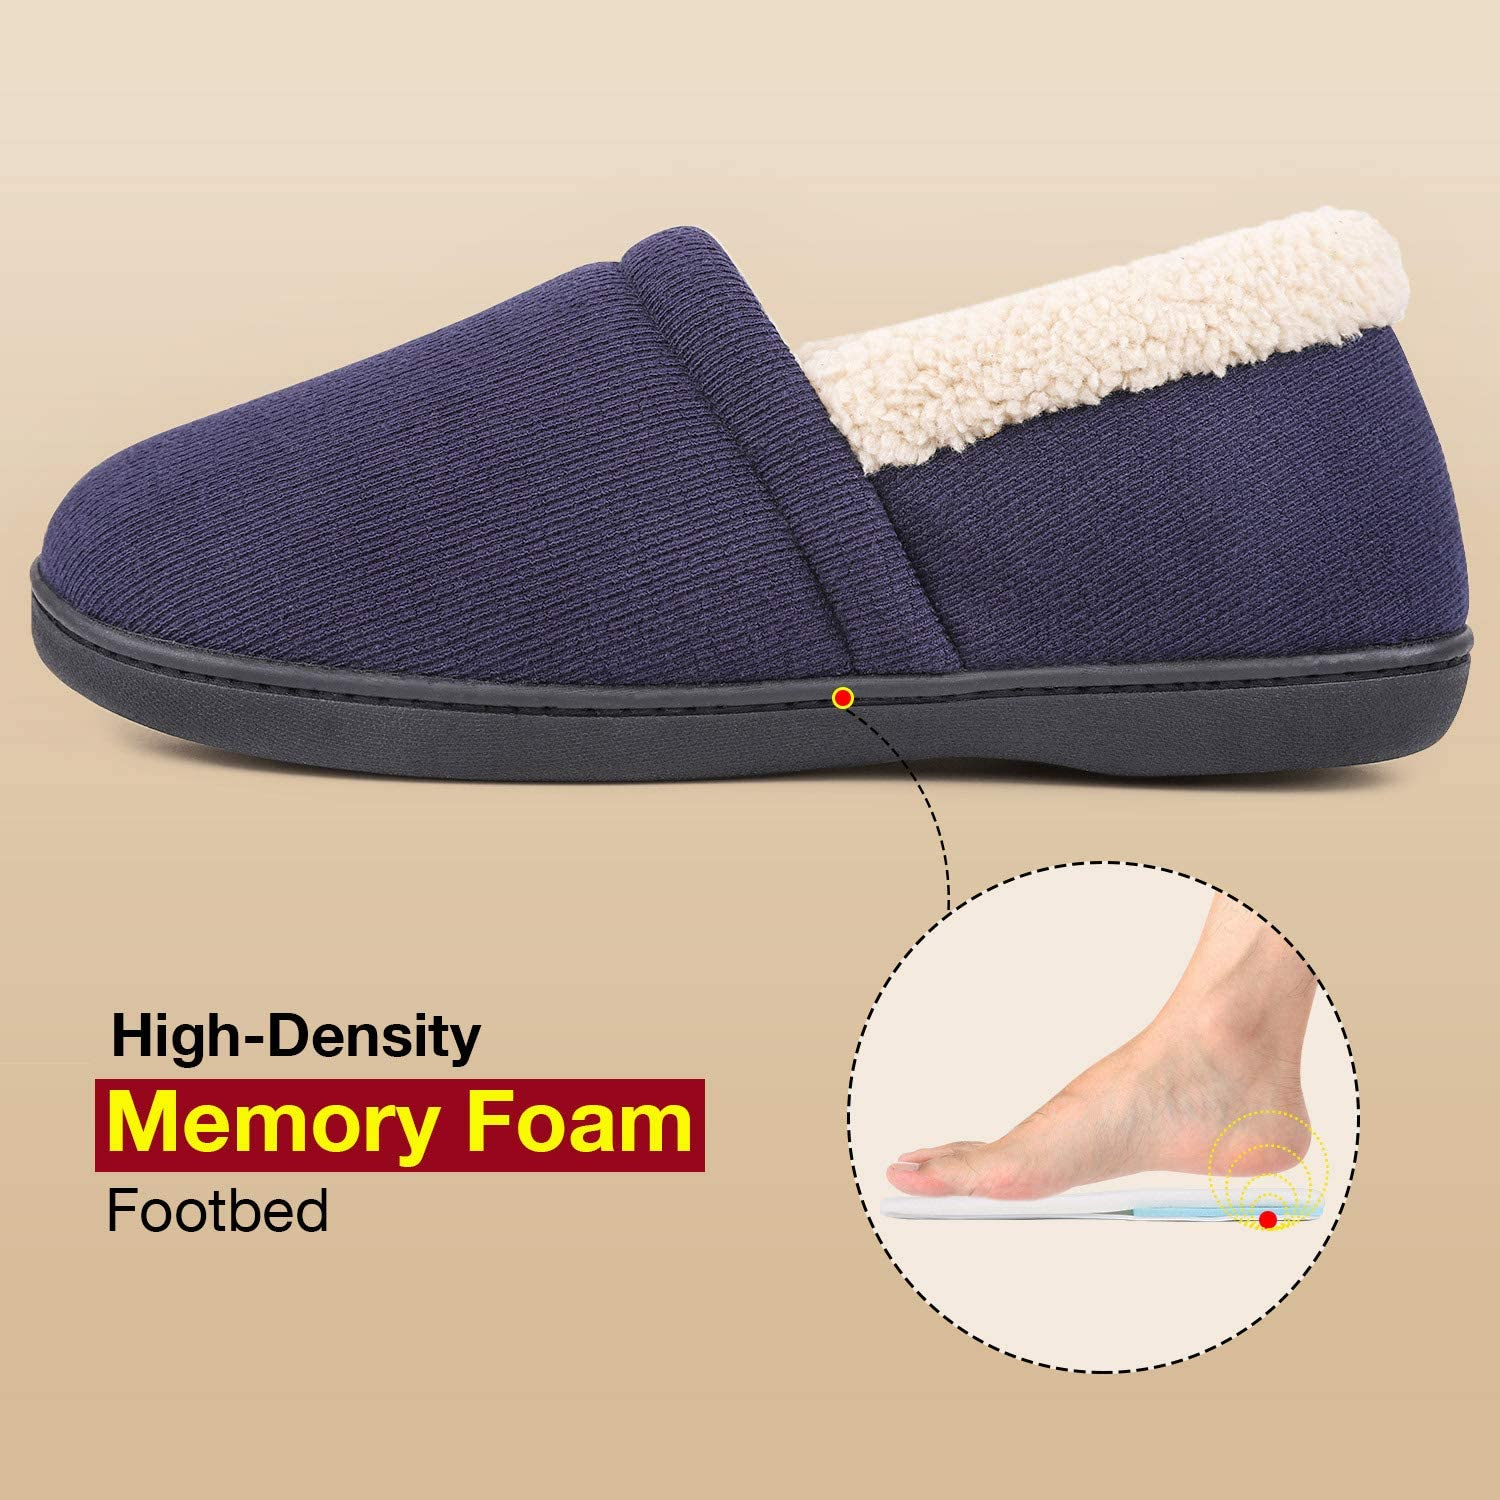 Mens Comfy Fuzzy Knit Cotton Memory Foam House Shoes Slippers w//Indoor Outdoor Sole